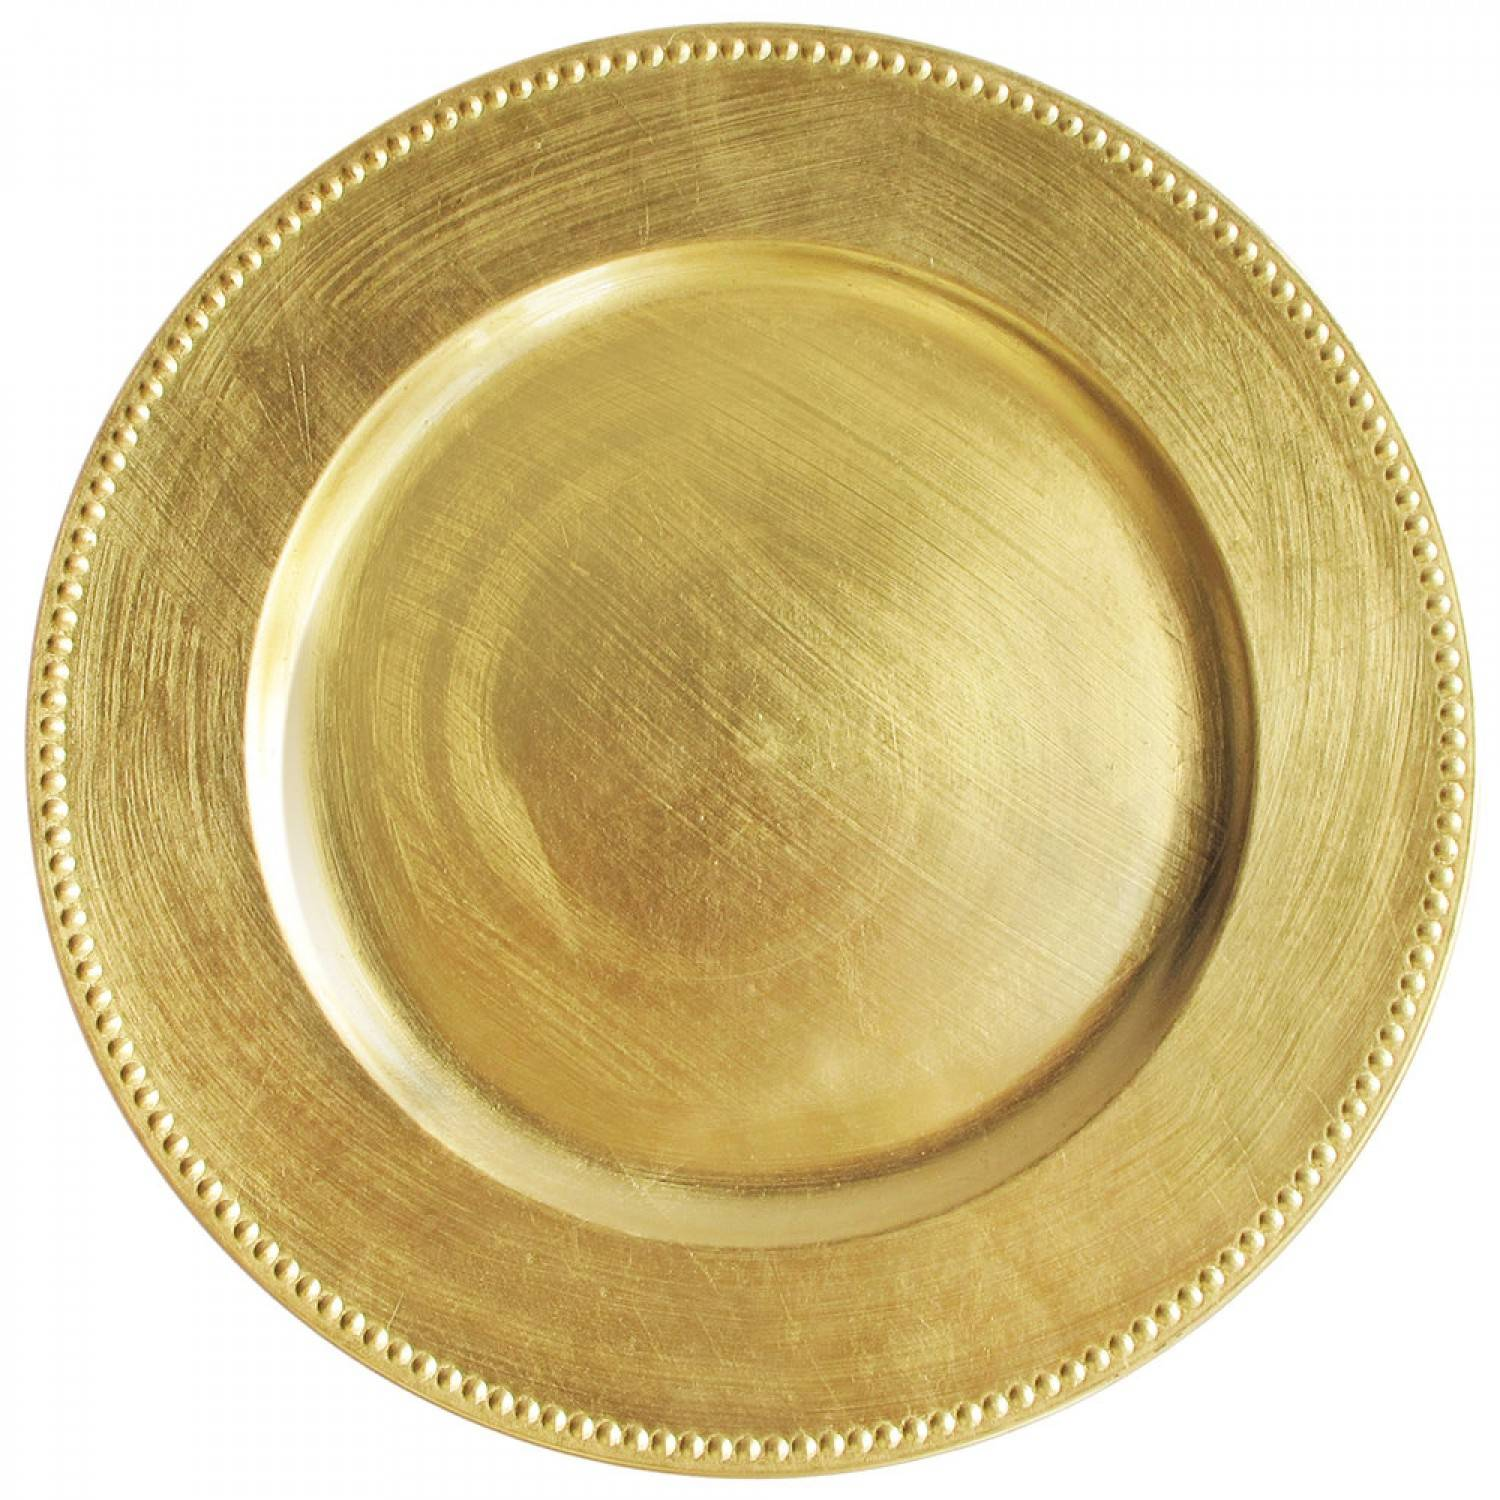 Round Acrylic Gold Beaded Charger Plate 13&